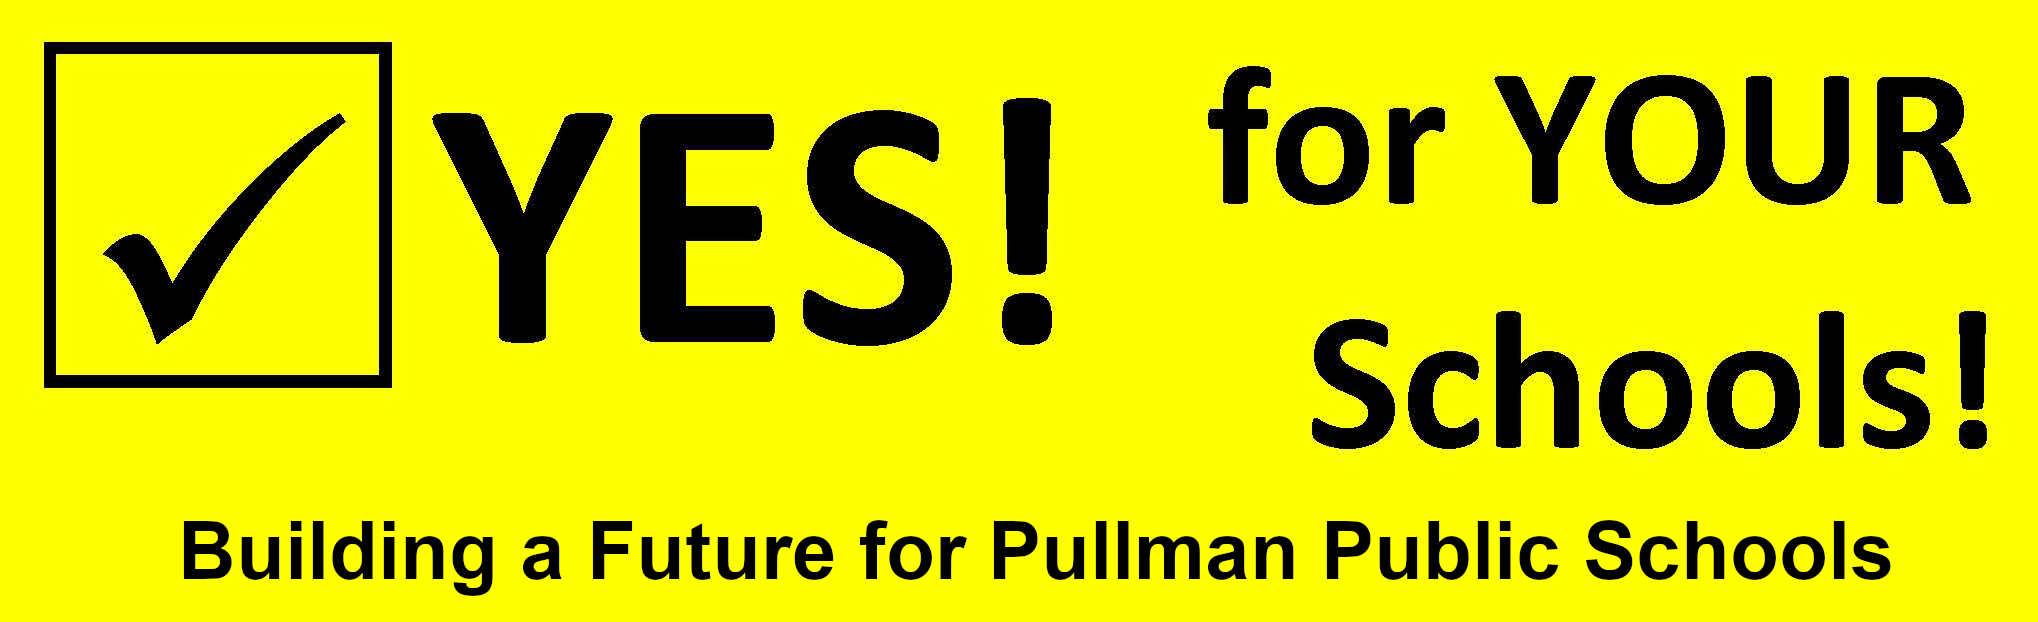 Yes for Pullman Public Schools Logo